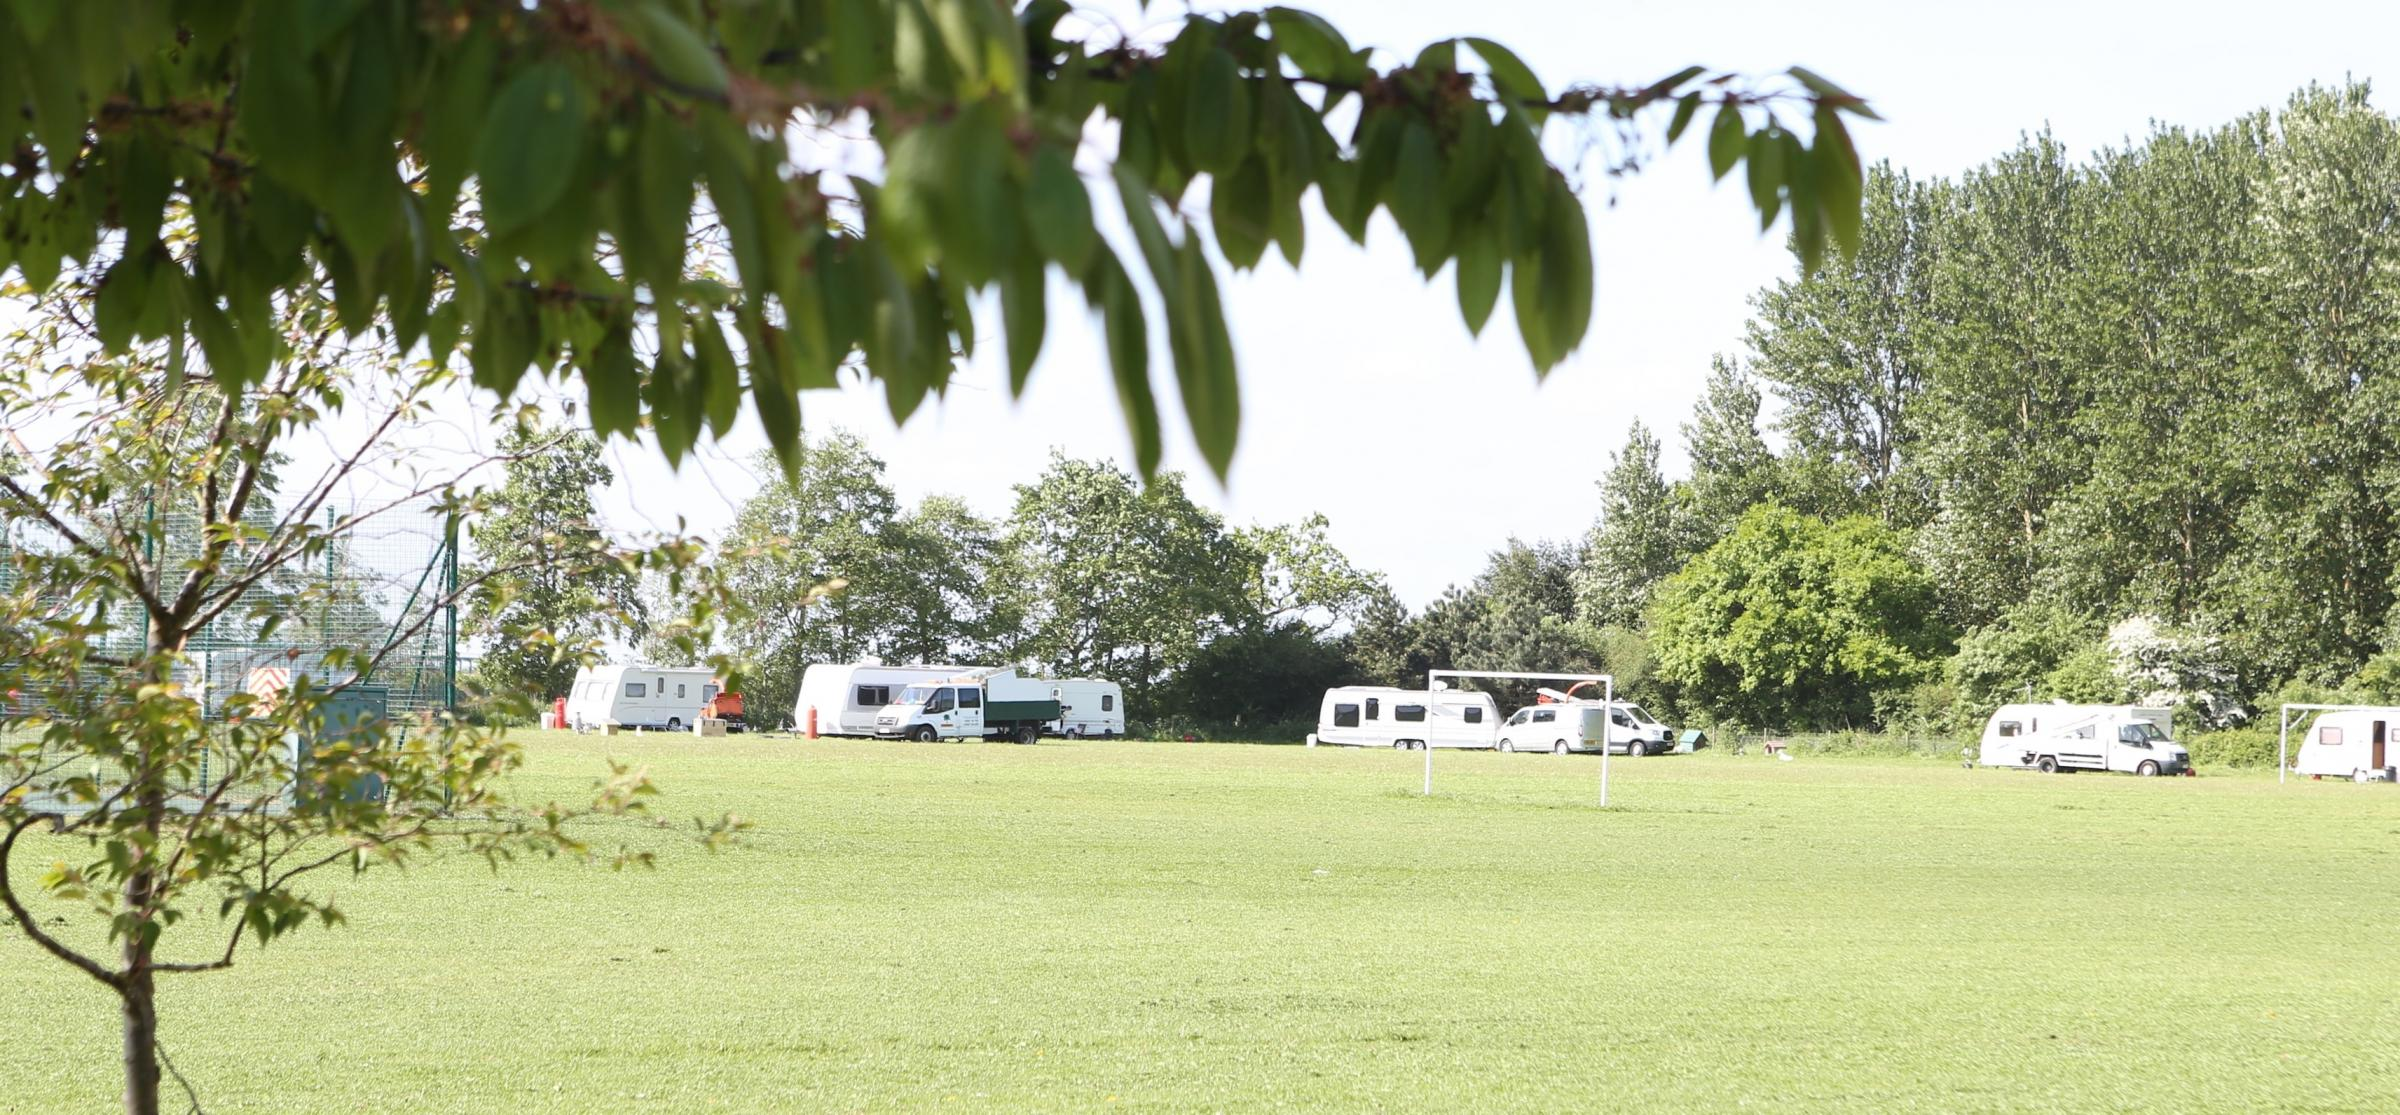 Encampment - the travellers have been ordered to move on by Essex Police